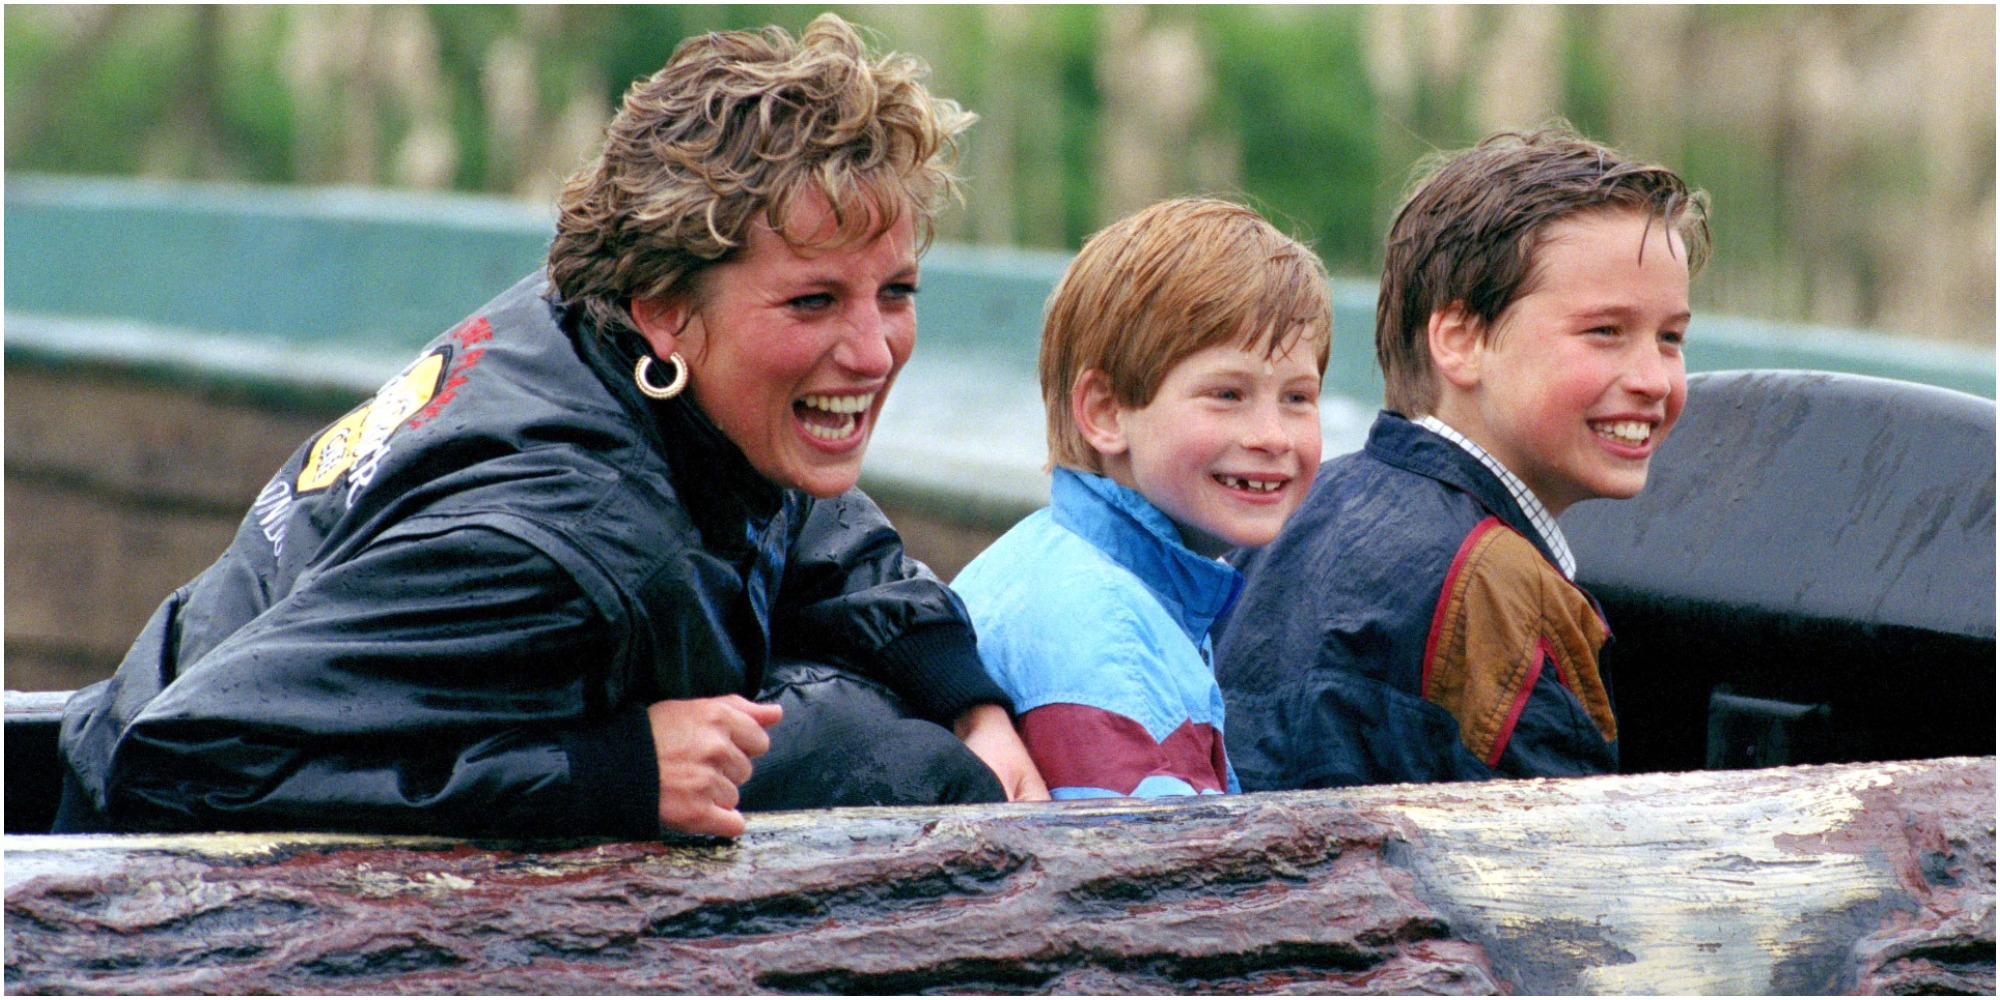 Princess Diana, Prince Harry and Prince William on a ride in a United Kingdom amusement park.